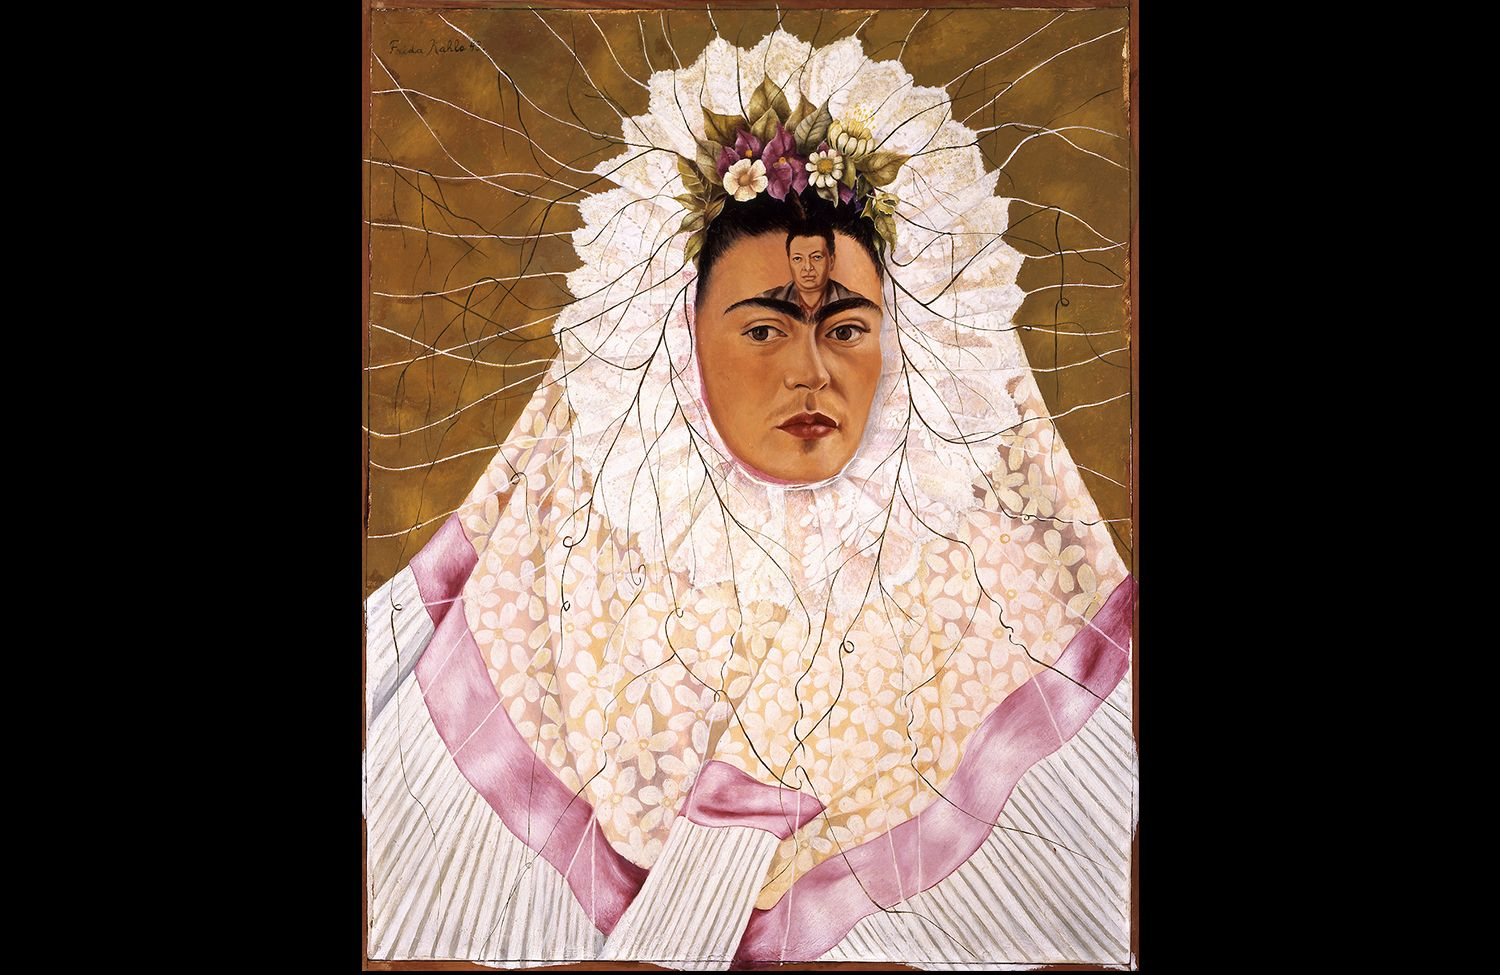 Frida Kahlo: Appearances Can Be Deceiving 4